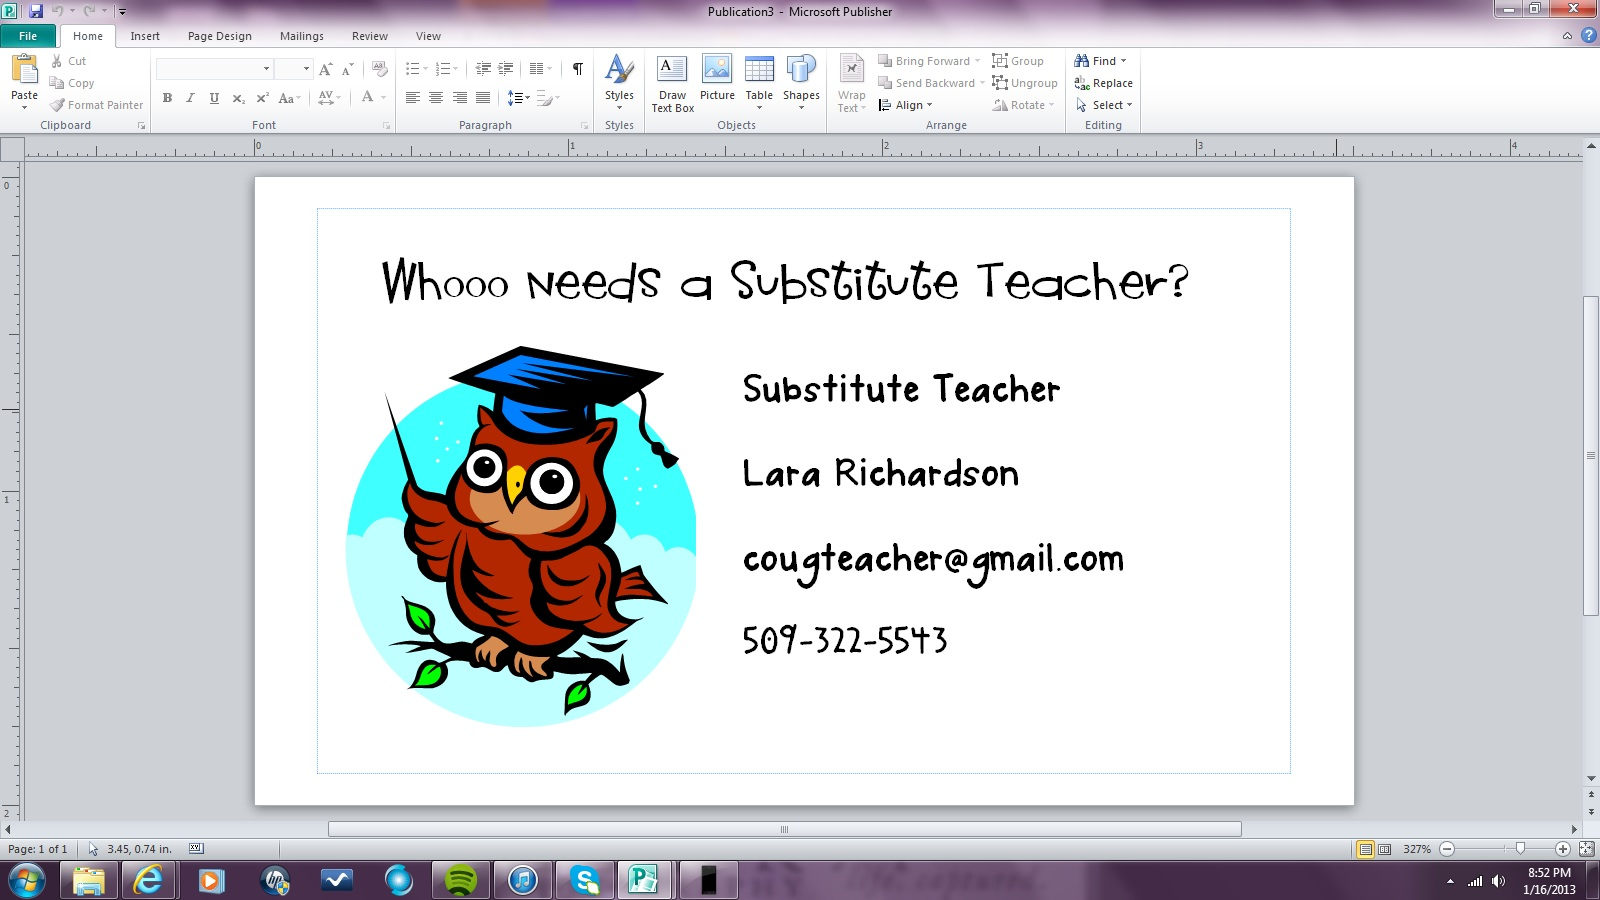 Free editable business cards for substitute teachers images card free editable business cards for substitute teachers choice image excellent teacher business card template free photos cheaphphosting Image collections